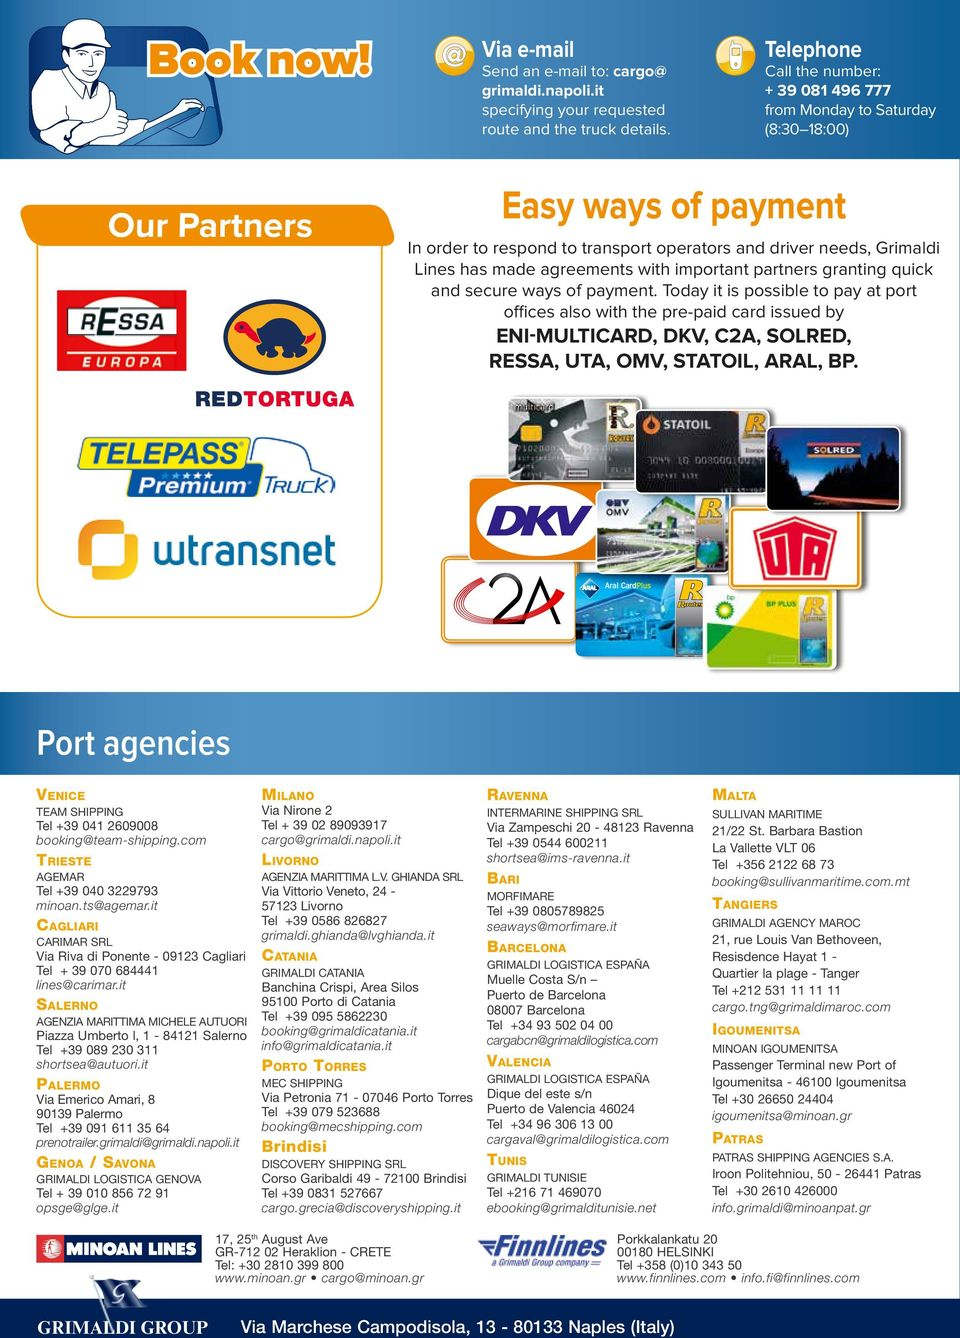 agreements with important partners granting quick and secure ways of payment.